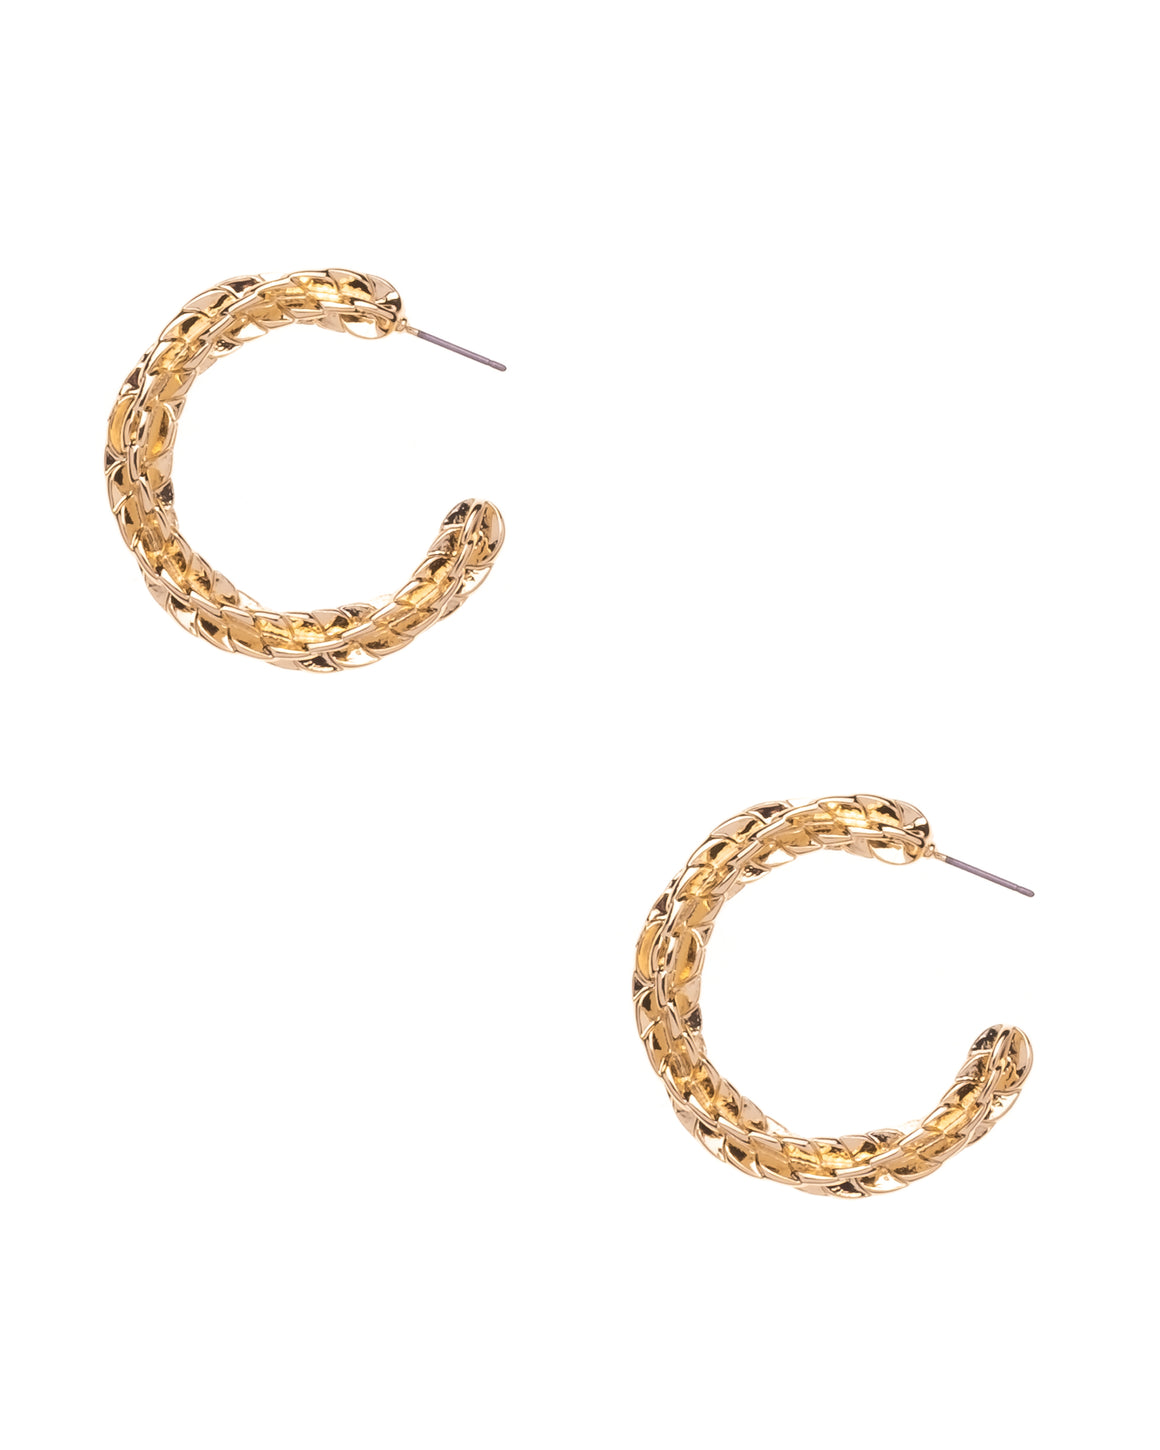 TWIST AND SHOUT HOOPS